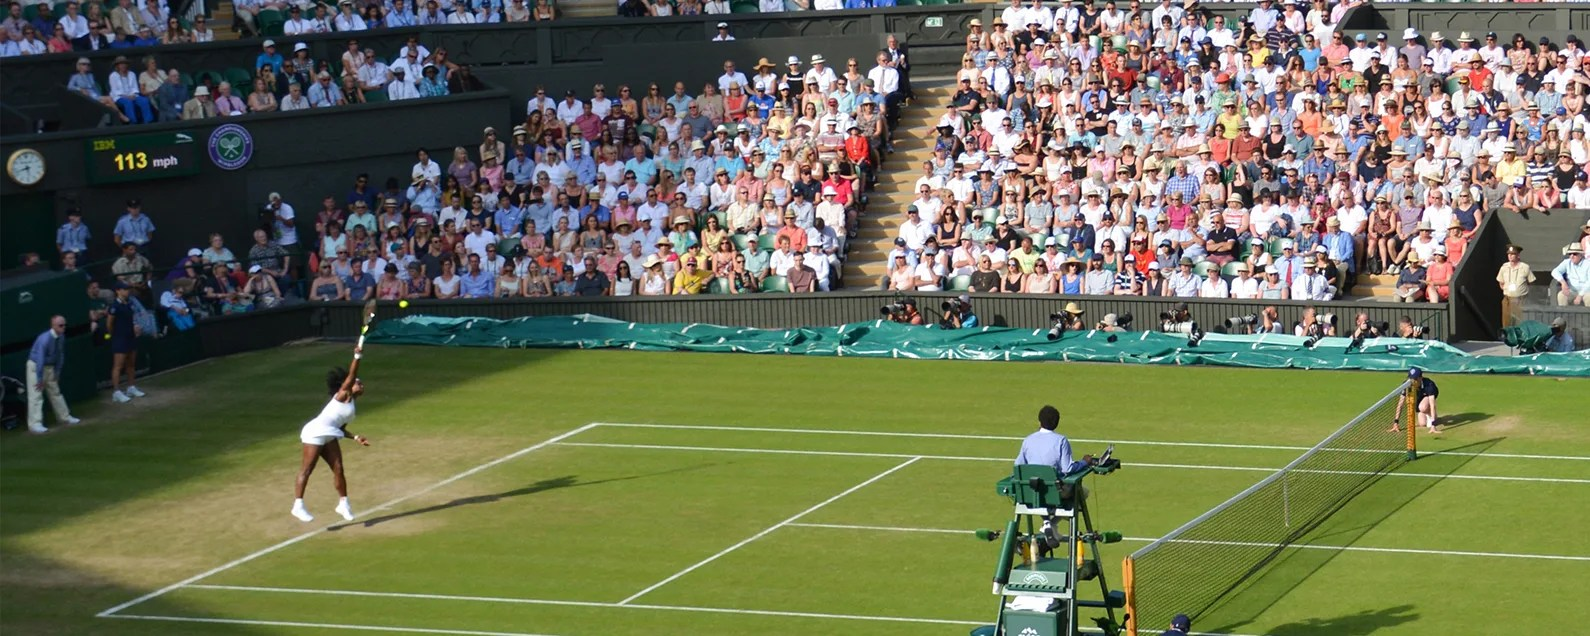 How to Watch Wimbledon 2018 Live on Apple TV without Cable